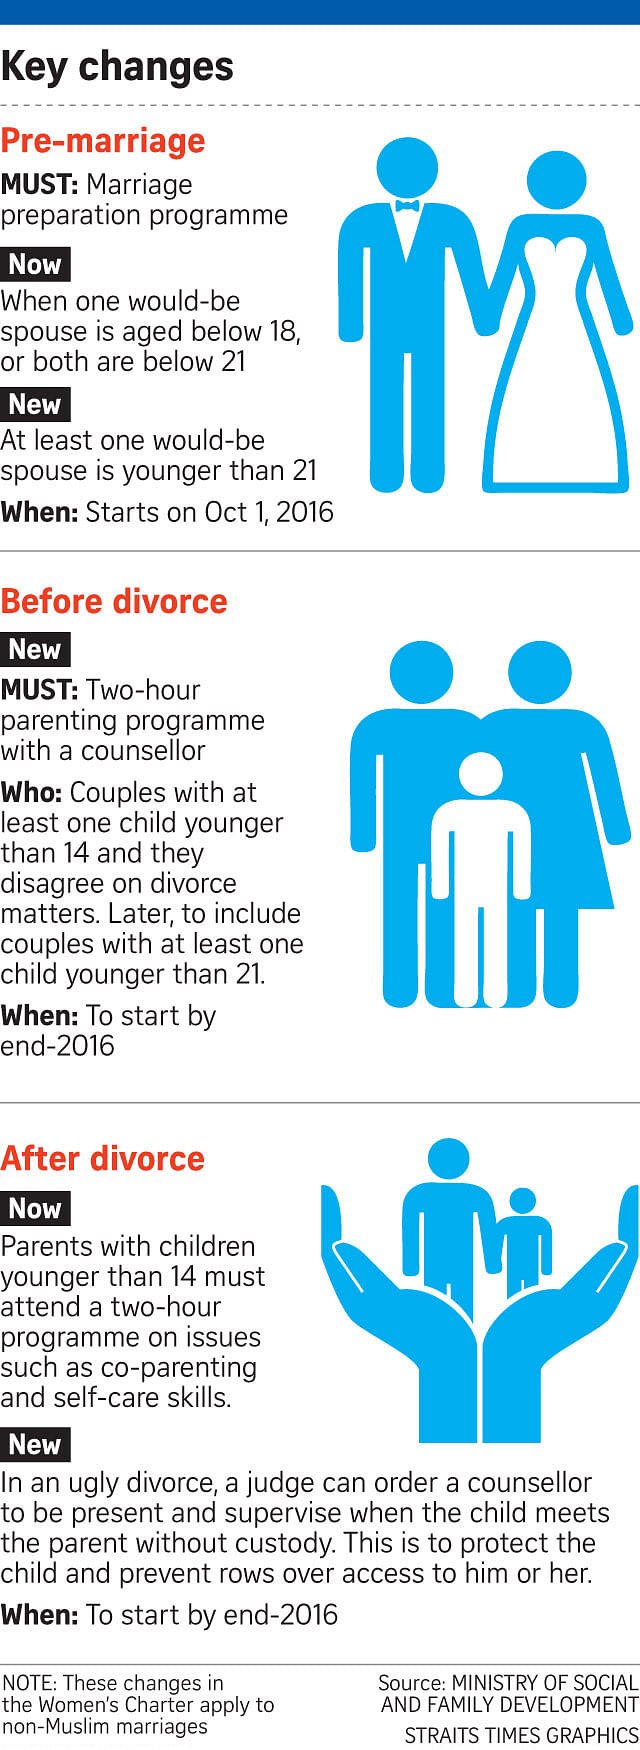 Parliament: Parents about to divorce will have to go for pre-divorce